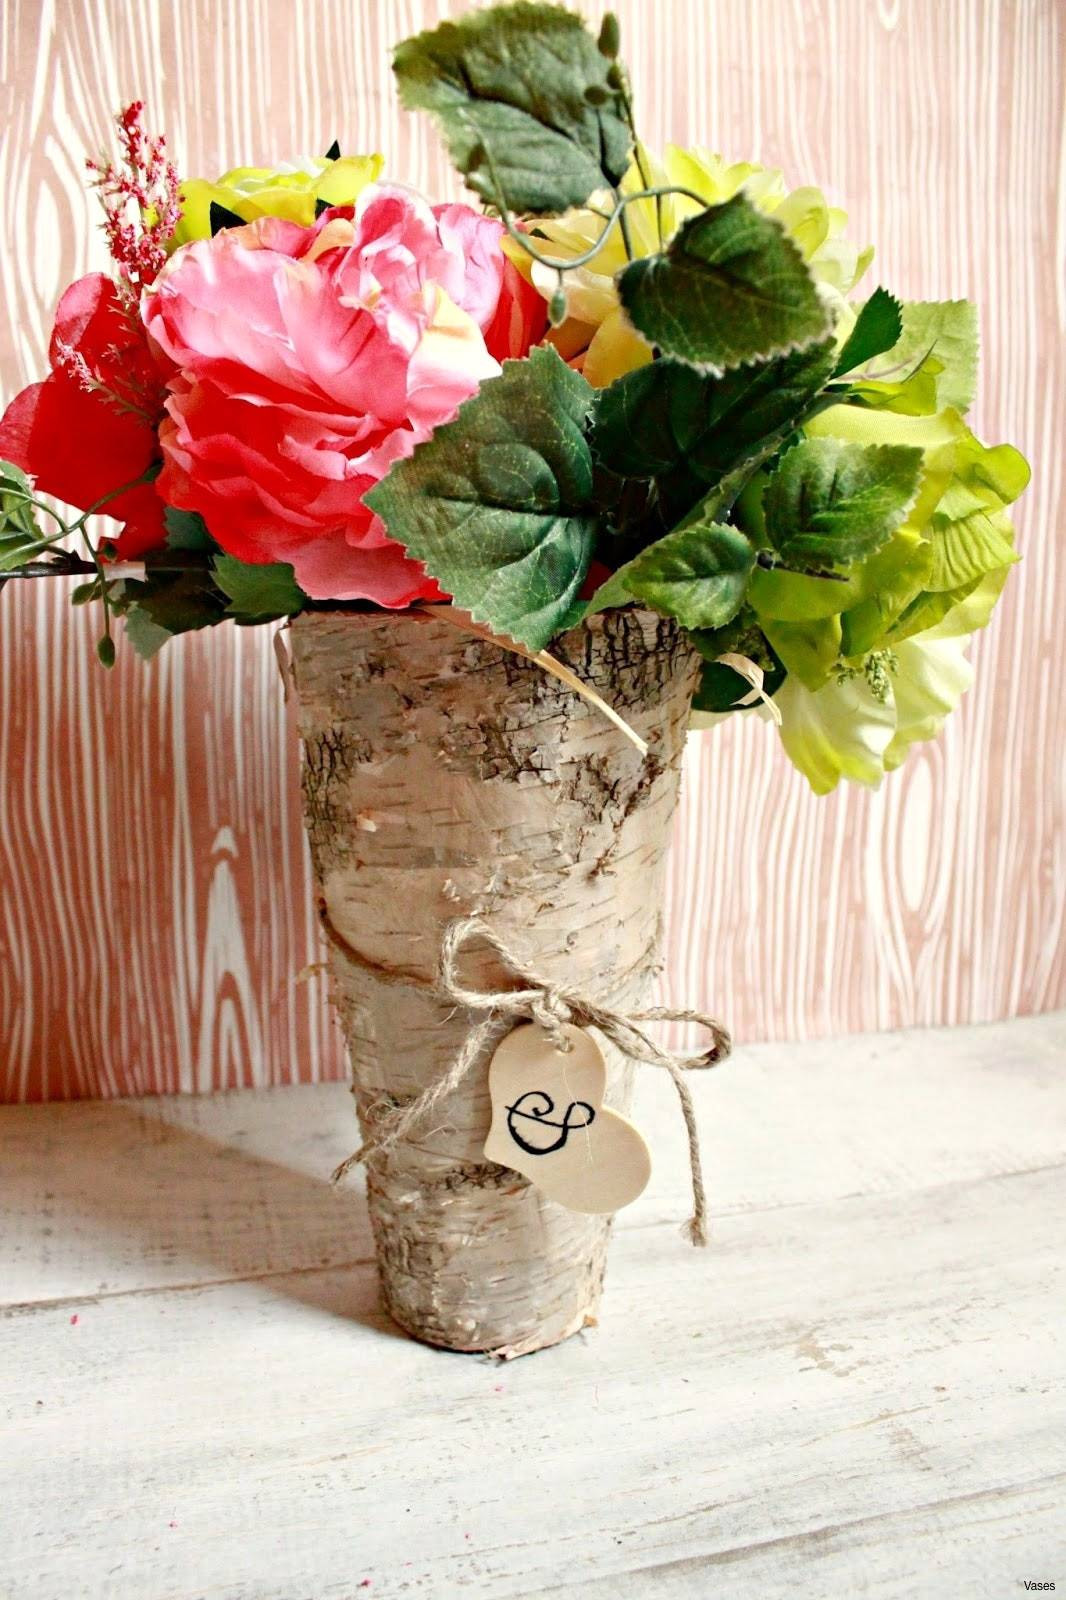 lily flower in vase of centerpieces rustic decoration wood picturesque floral www in rustic wedding decor diy beautiful flowers and decorations for weddings vases diy wood vase jpg 1066x1600